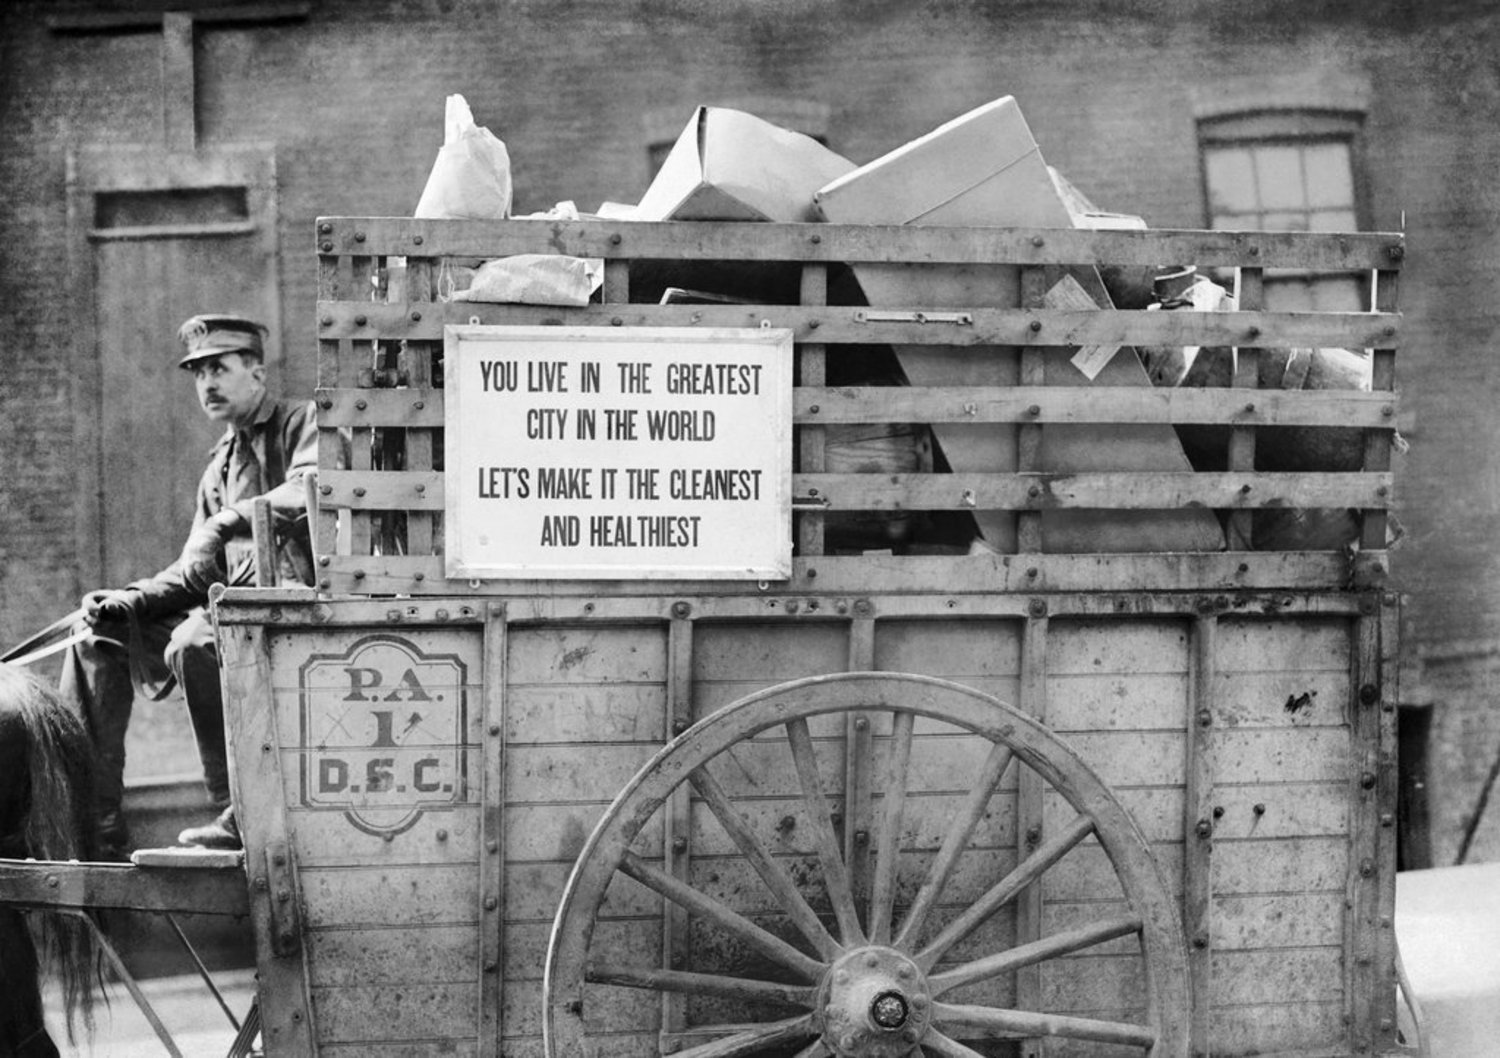 """""""A street-cleaning cart in New York City, where there were said to be 450 of them in 1915. Earlier that year, The Times reported on other improvements to the city's streets, at a meeting held at Columbia University by the three borough presidents and John T. Fetherston, street-cleaning commissioner. The four men """"discussed the planning, construction and maintenance of public highways and public works and street cleaning before an audience including many of the prettiest young women students in the university,"""" The Times reported. The audience was attentive, """"but the women particularly became enthusiastic when President Marks told them of his fight for free public markets,"""" the report continued. Alas, that topic was not on the agenda. Boasting about the borough with the most asphalt (Brooklyn), however, was."""""""